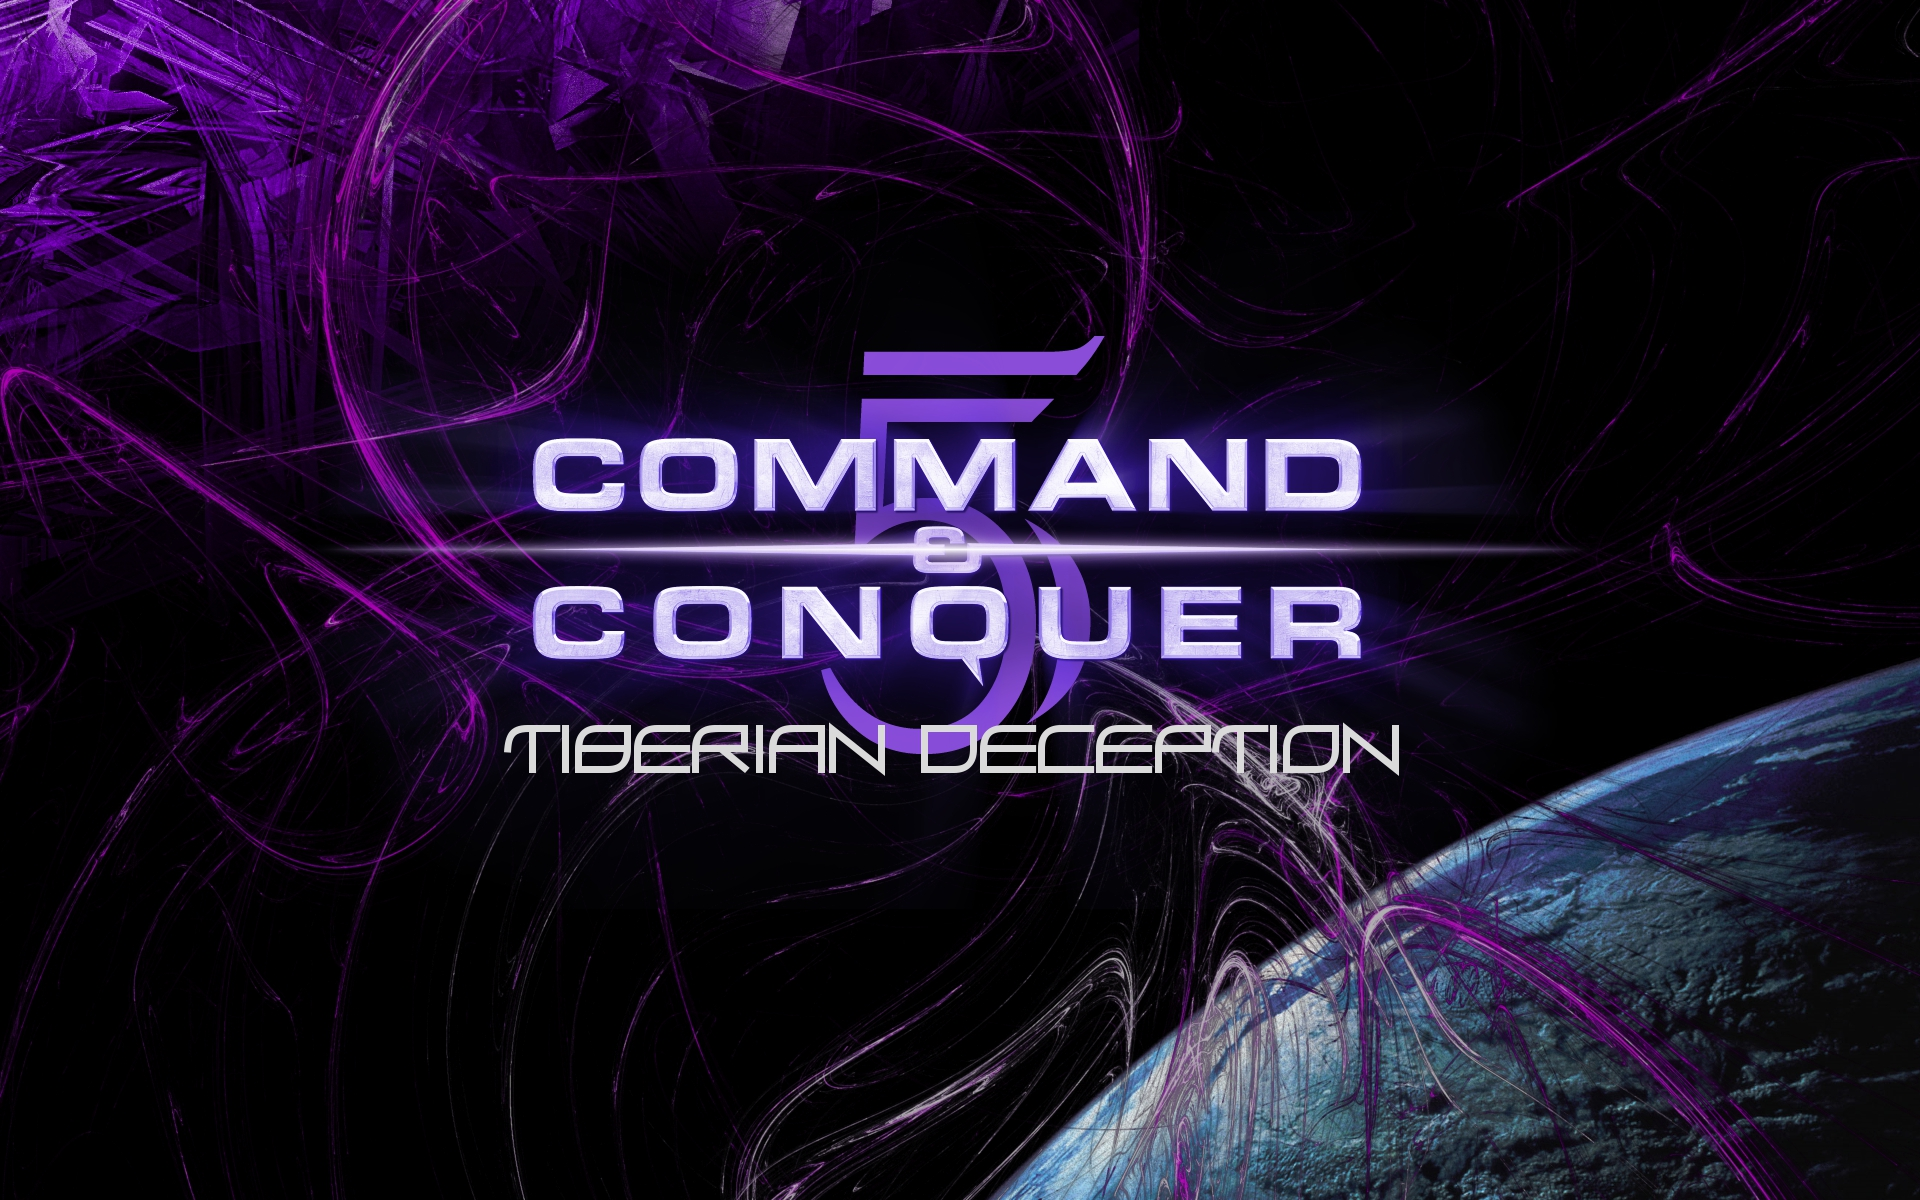 Command And Conquer Wallpaper: Command And Conquer 4 Wallpaper